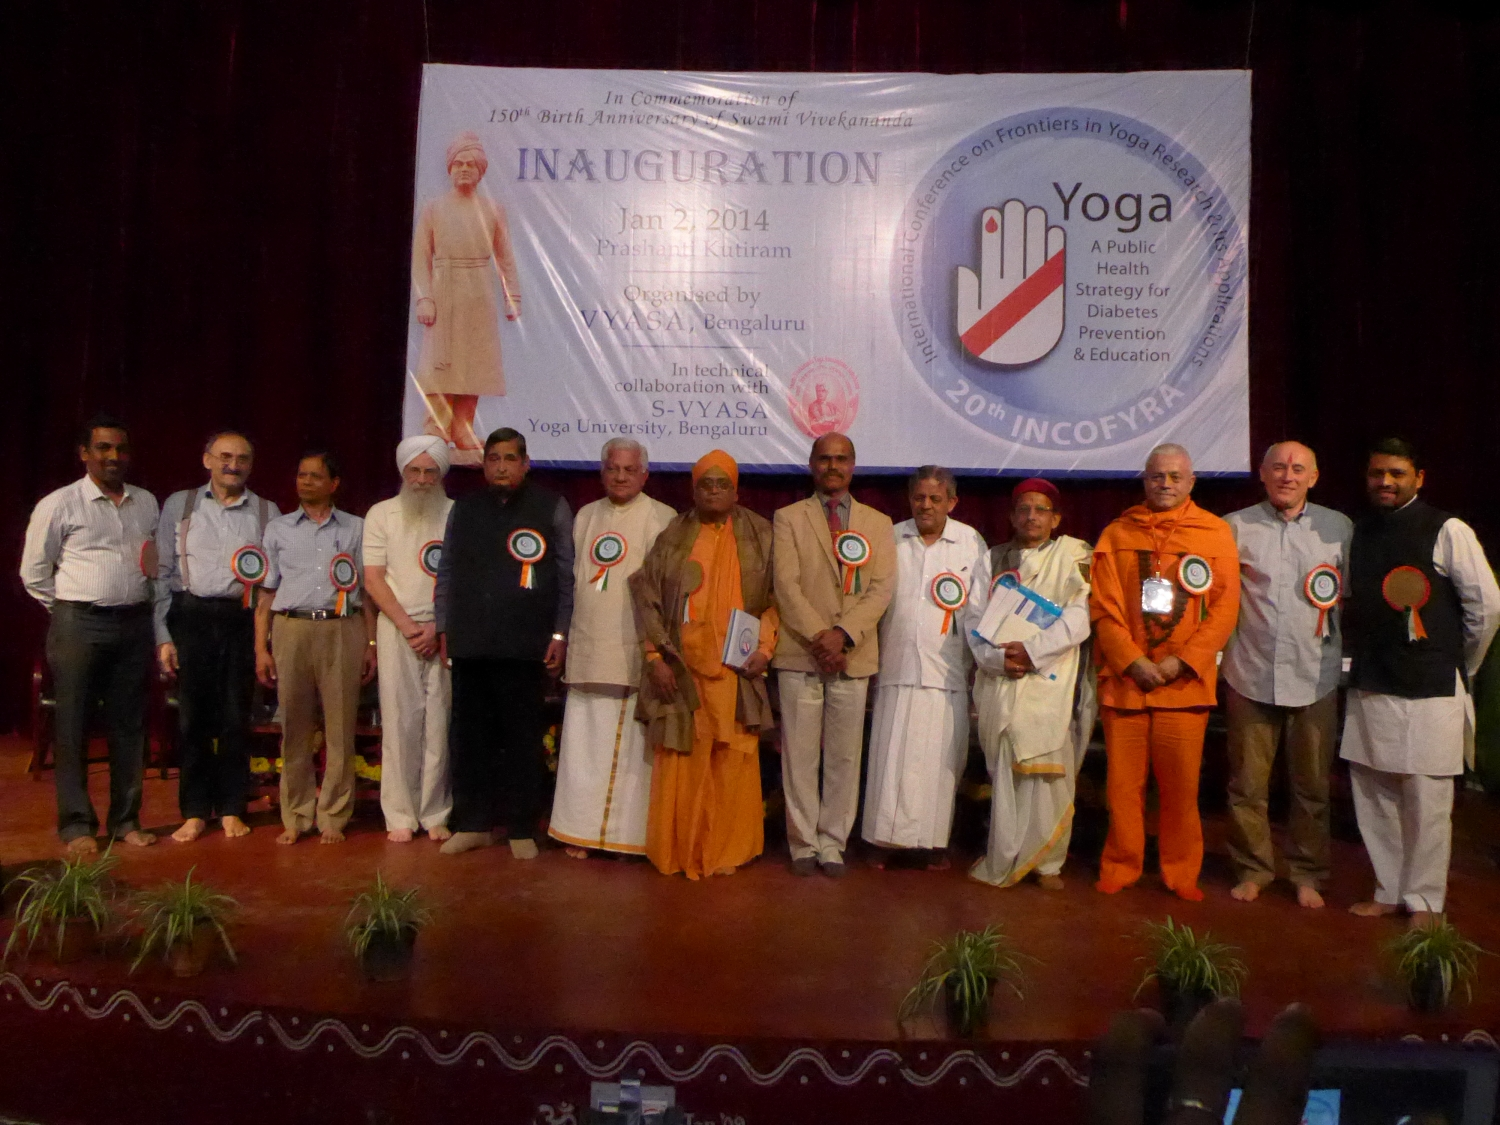 20th International Conference on Frontiers in Yoga Research and It's Applications - University of Bengaluru, S-Vyása - 2014, January, 2nd to 5th